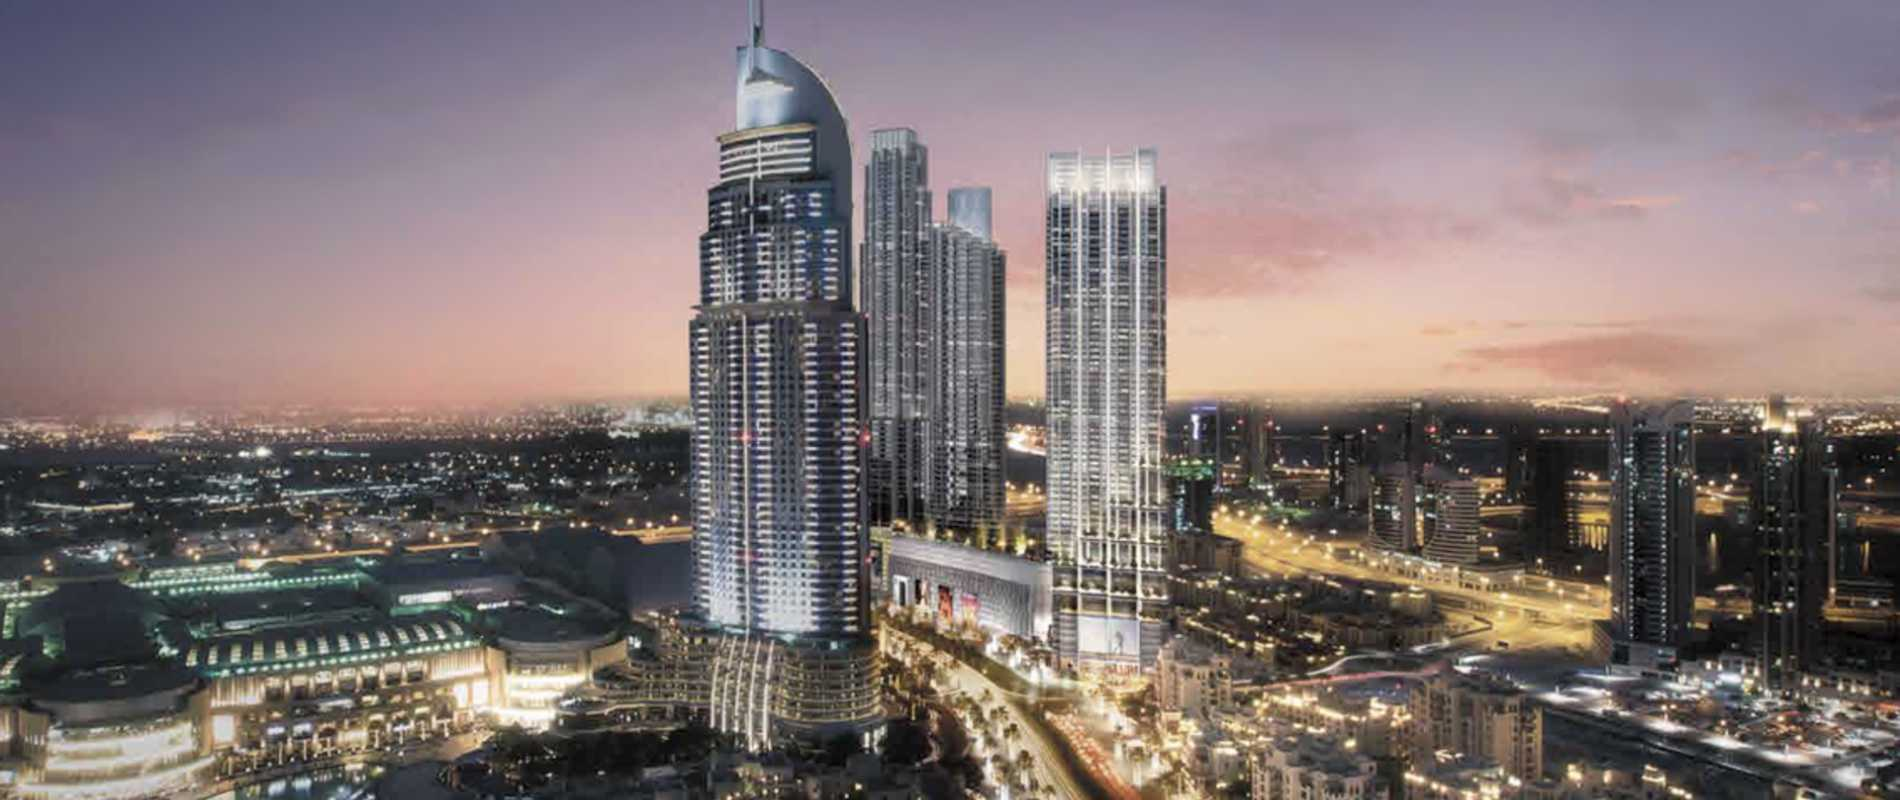 Luxury Property Dubai 2 Bedroom Apartment for sale in Boulevard Point Downtown Dubai